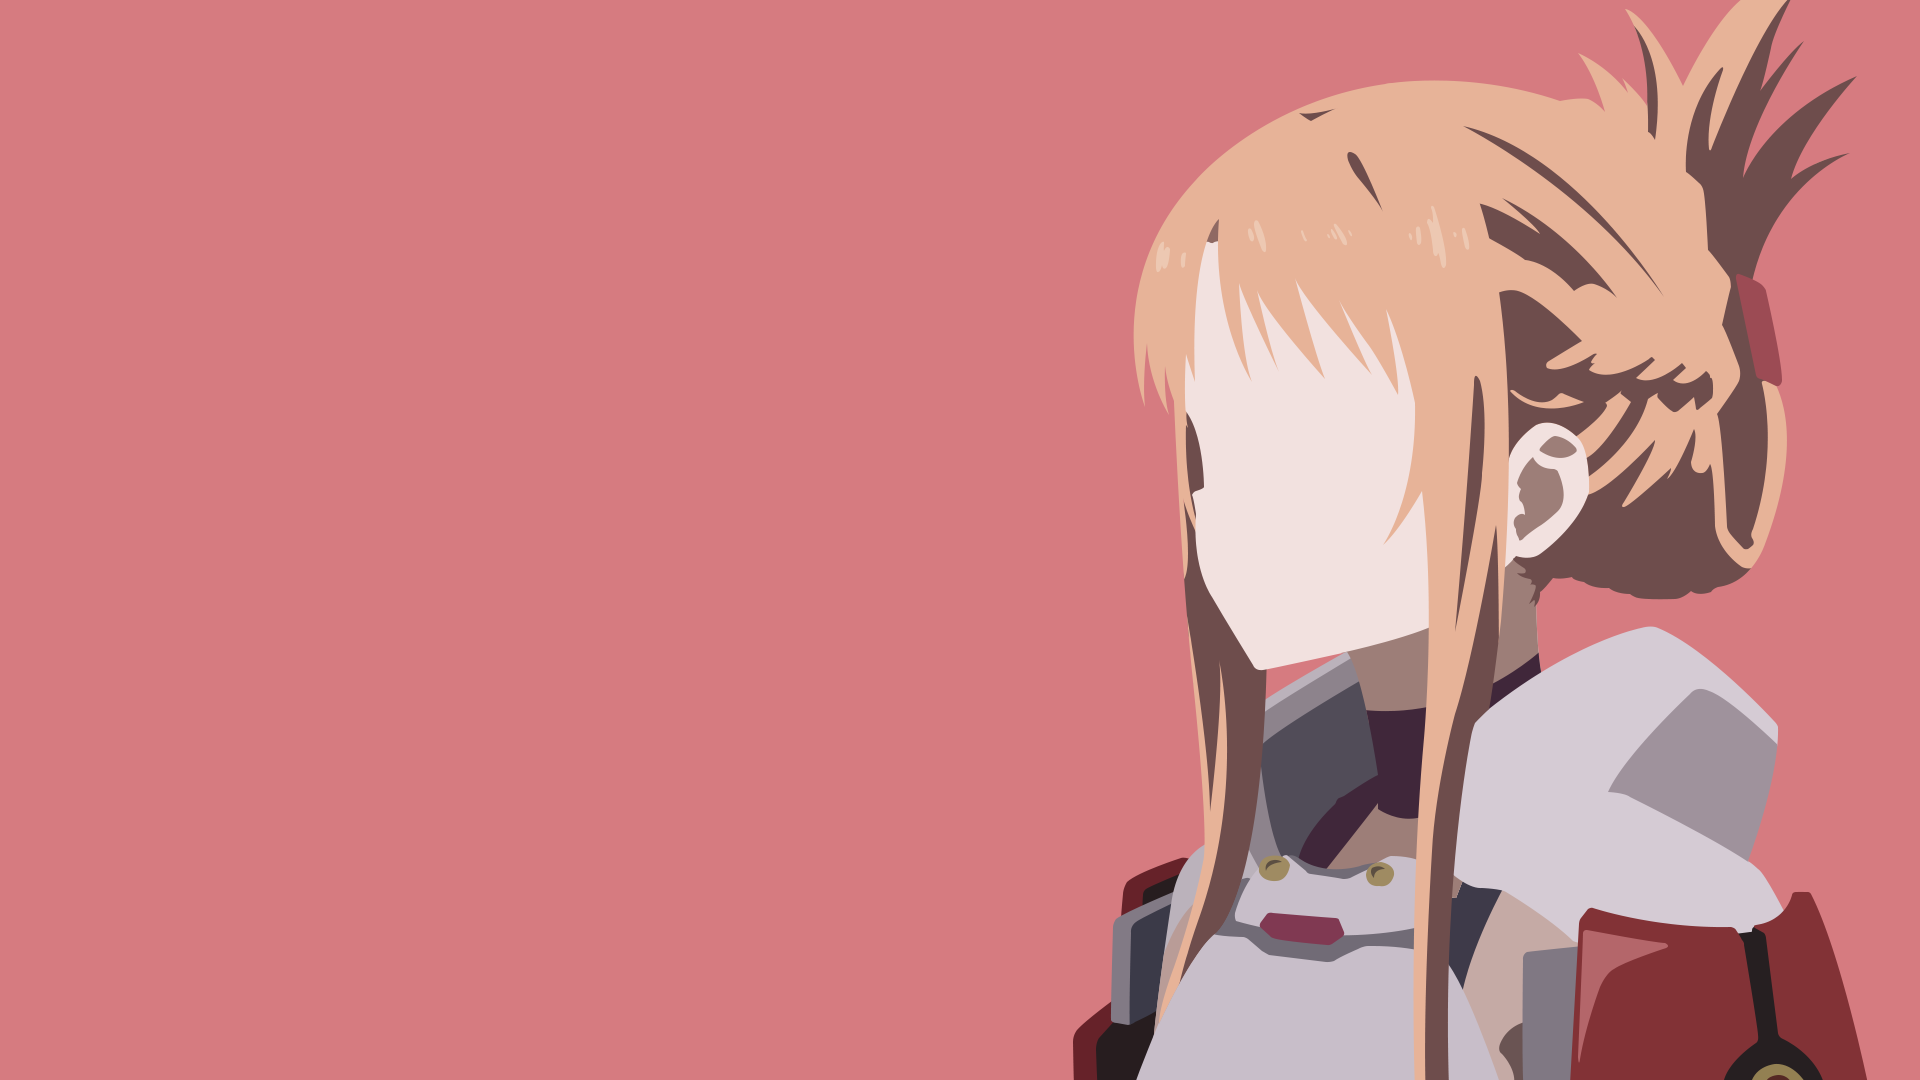 Asuna Yuuki From Sword Art Online Alicization Wallpaper For Dekstop Hd Wallpaper Background Image 1920x1080 Id 954022 Wallpaper Abyss